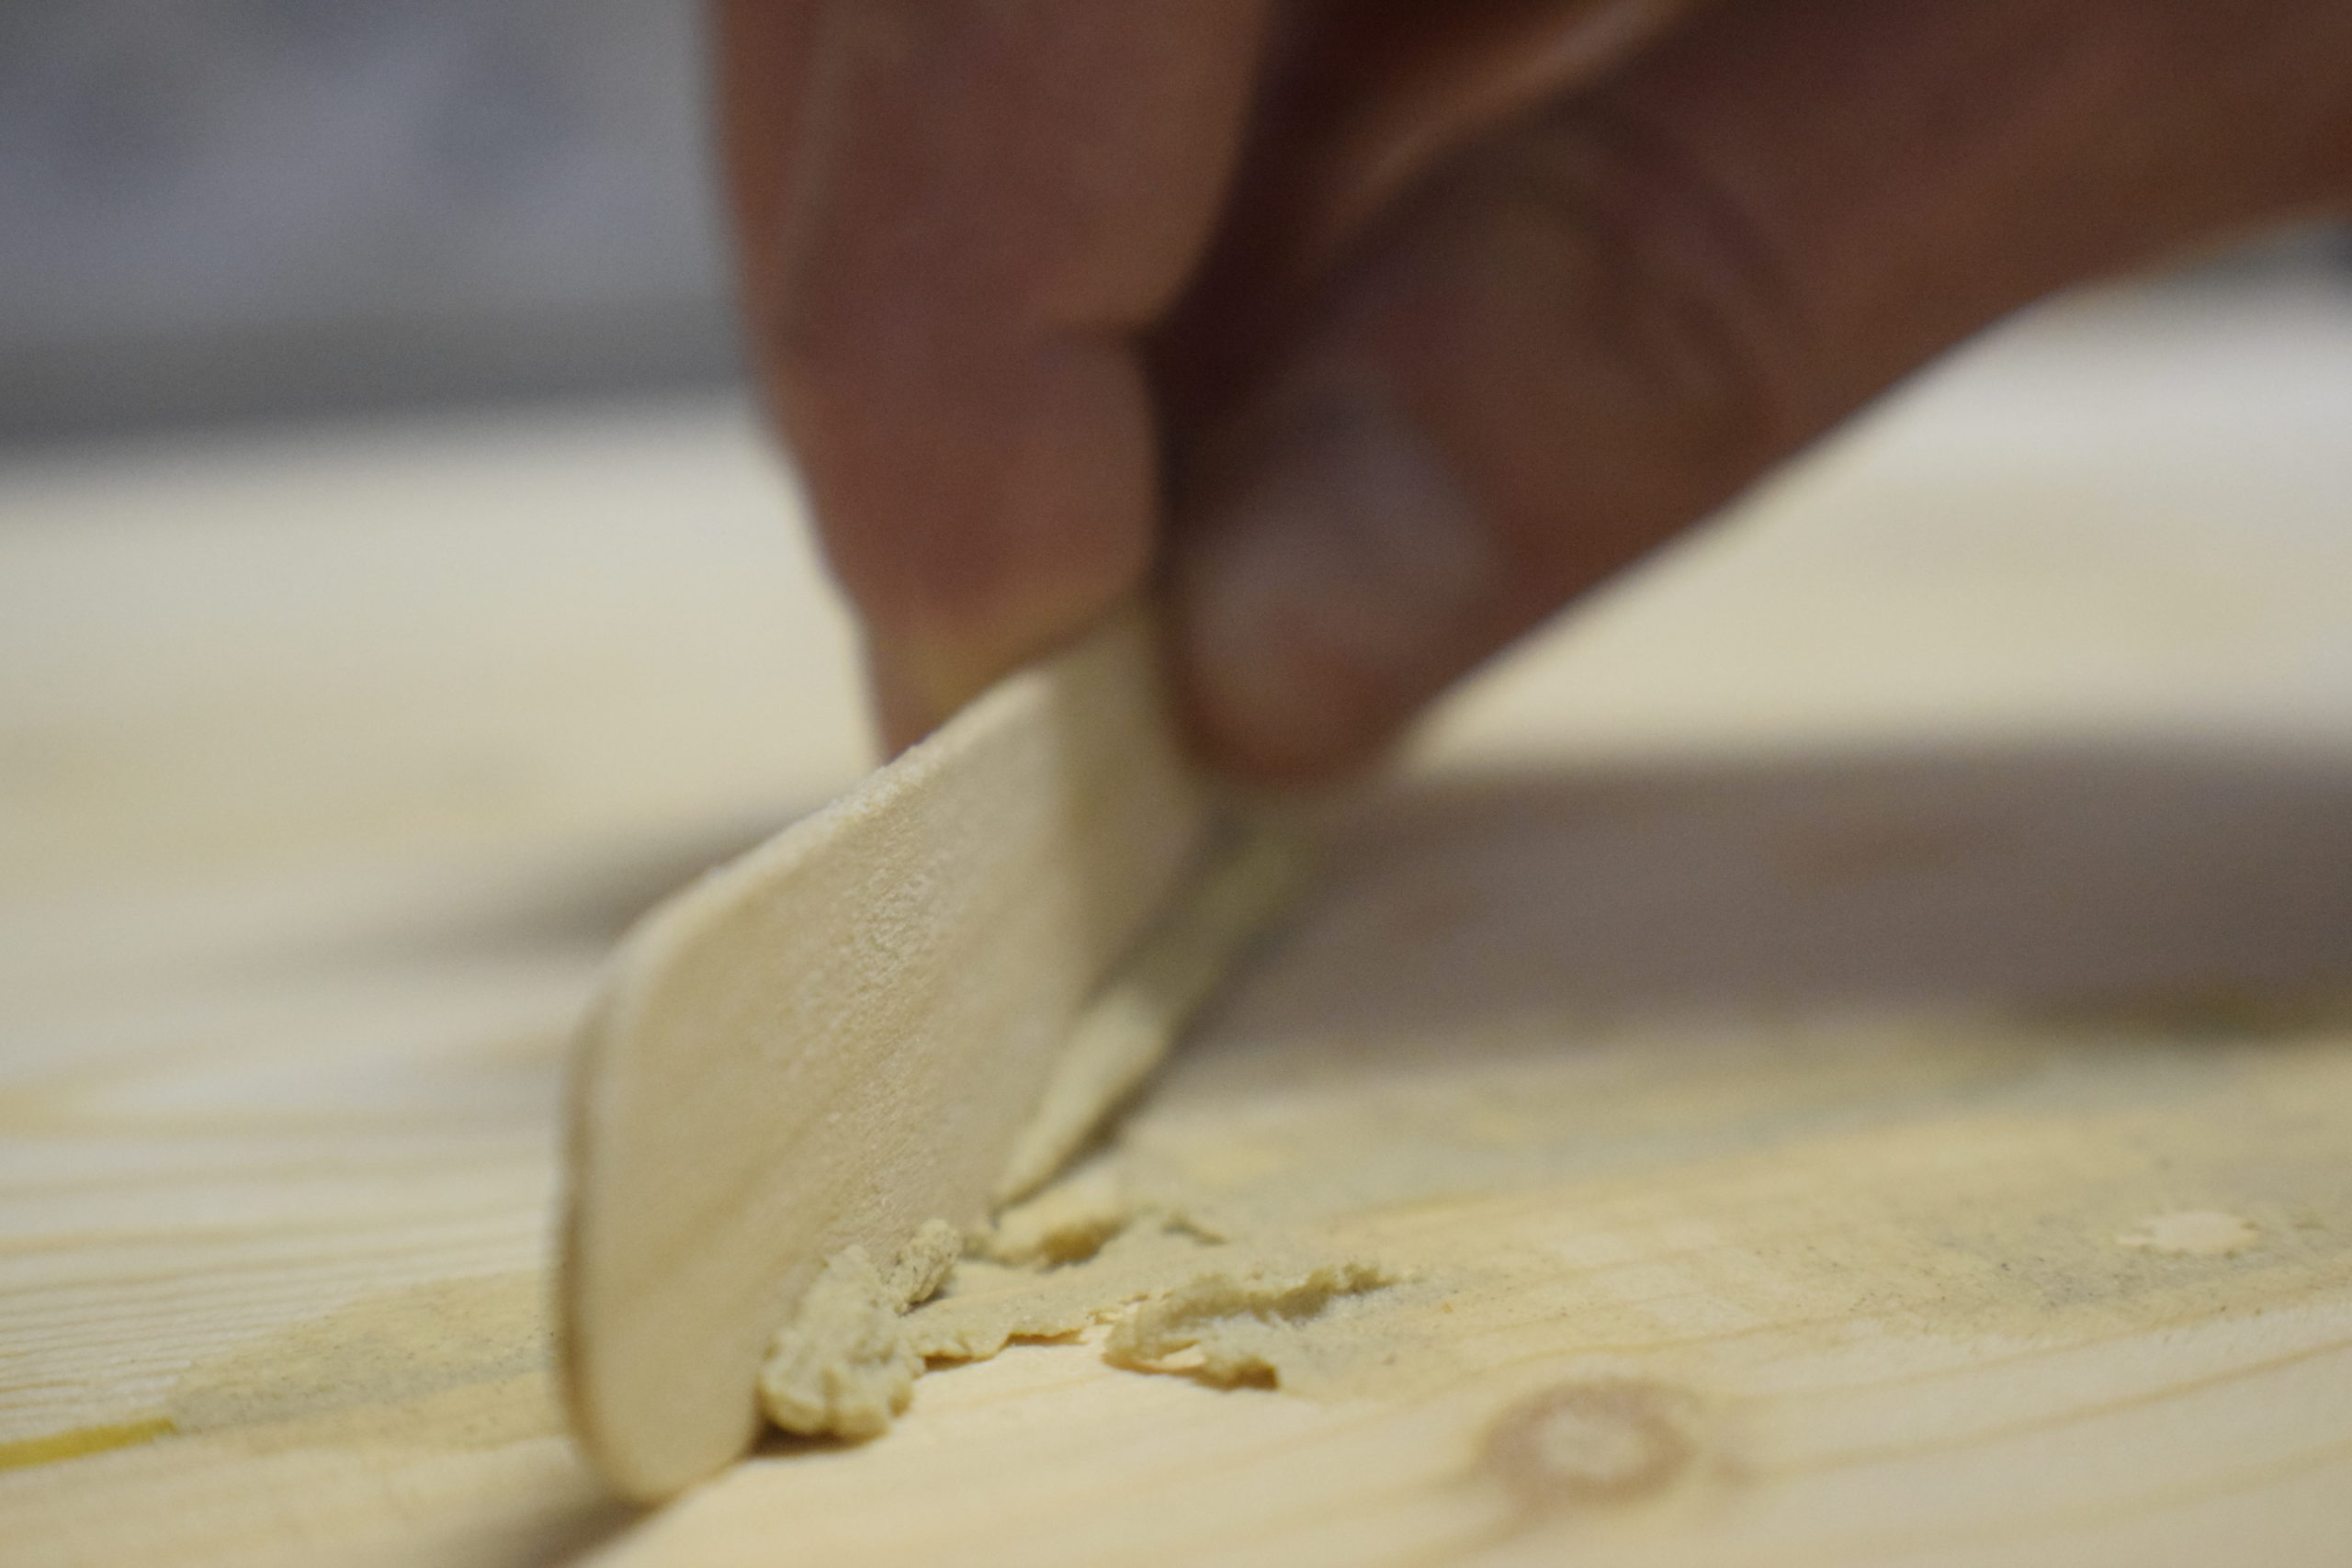 hand using popsicle stick to wipe away excess wood filler on pine wood